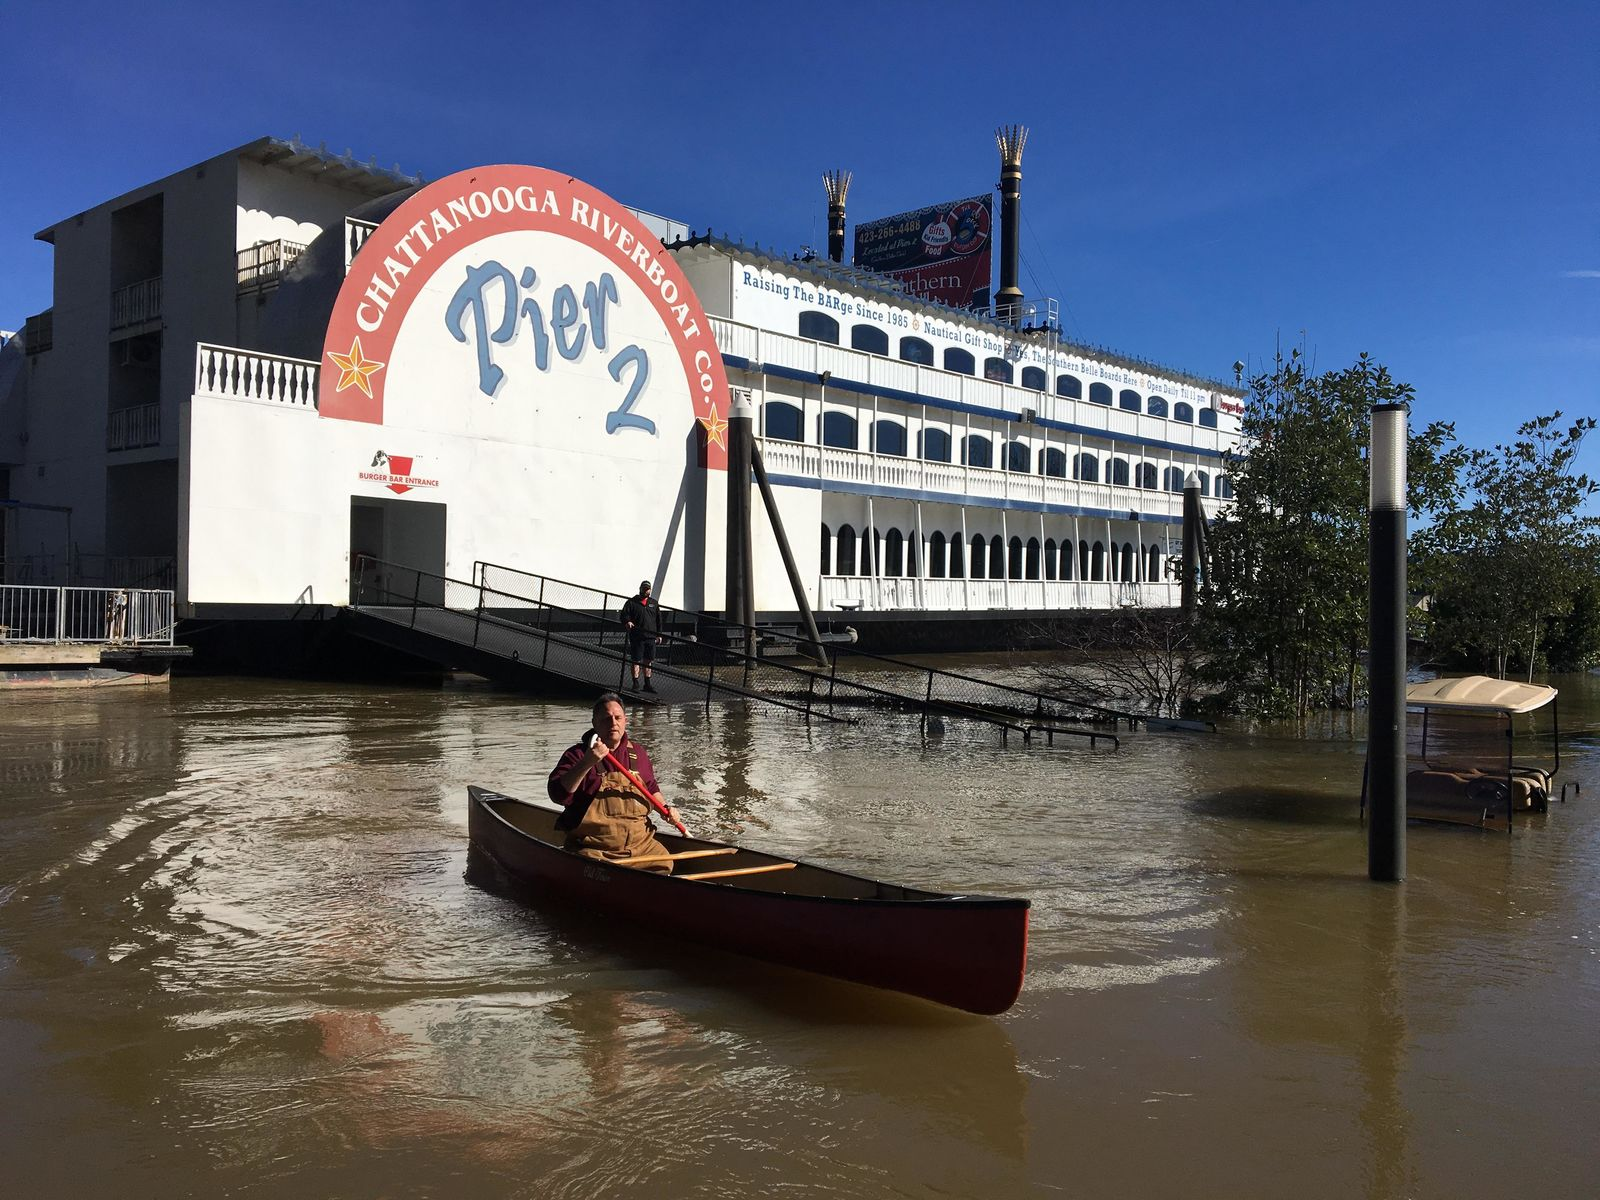 Flood damage in 2019 at the Southern Belle Riverboat. Staff workers had to canoe to work. Jonathan Reinert, the general manager, says they've been dealing with flooding issues for years. (Image: Jonathan Reinert)